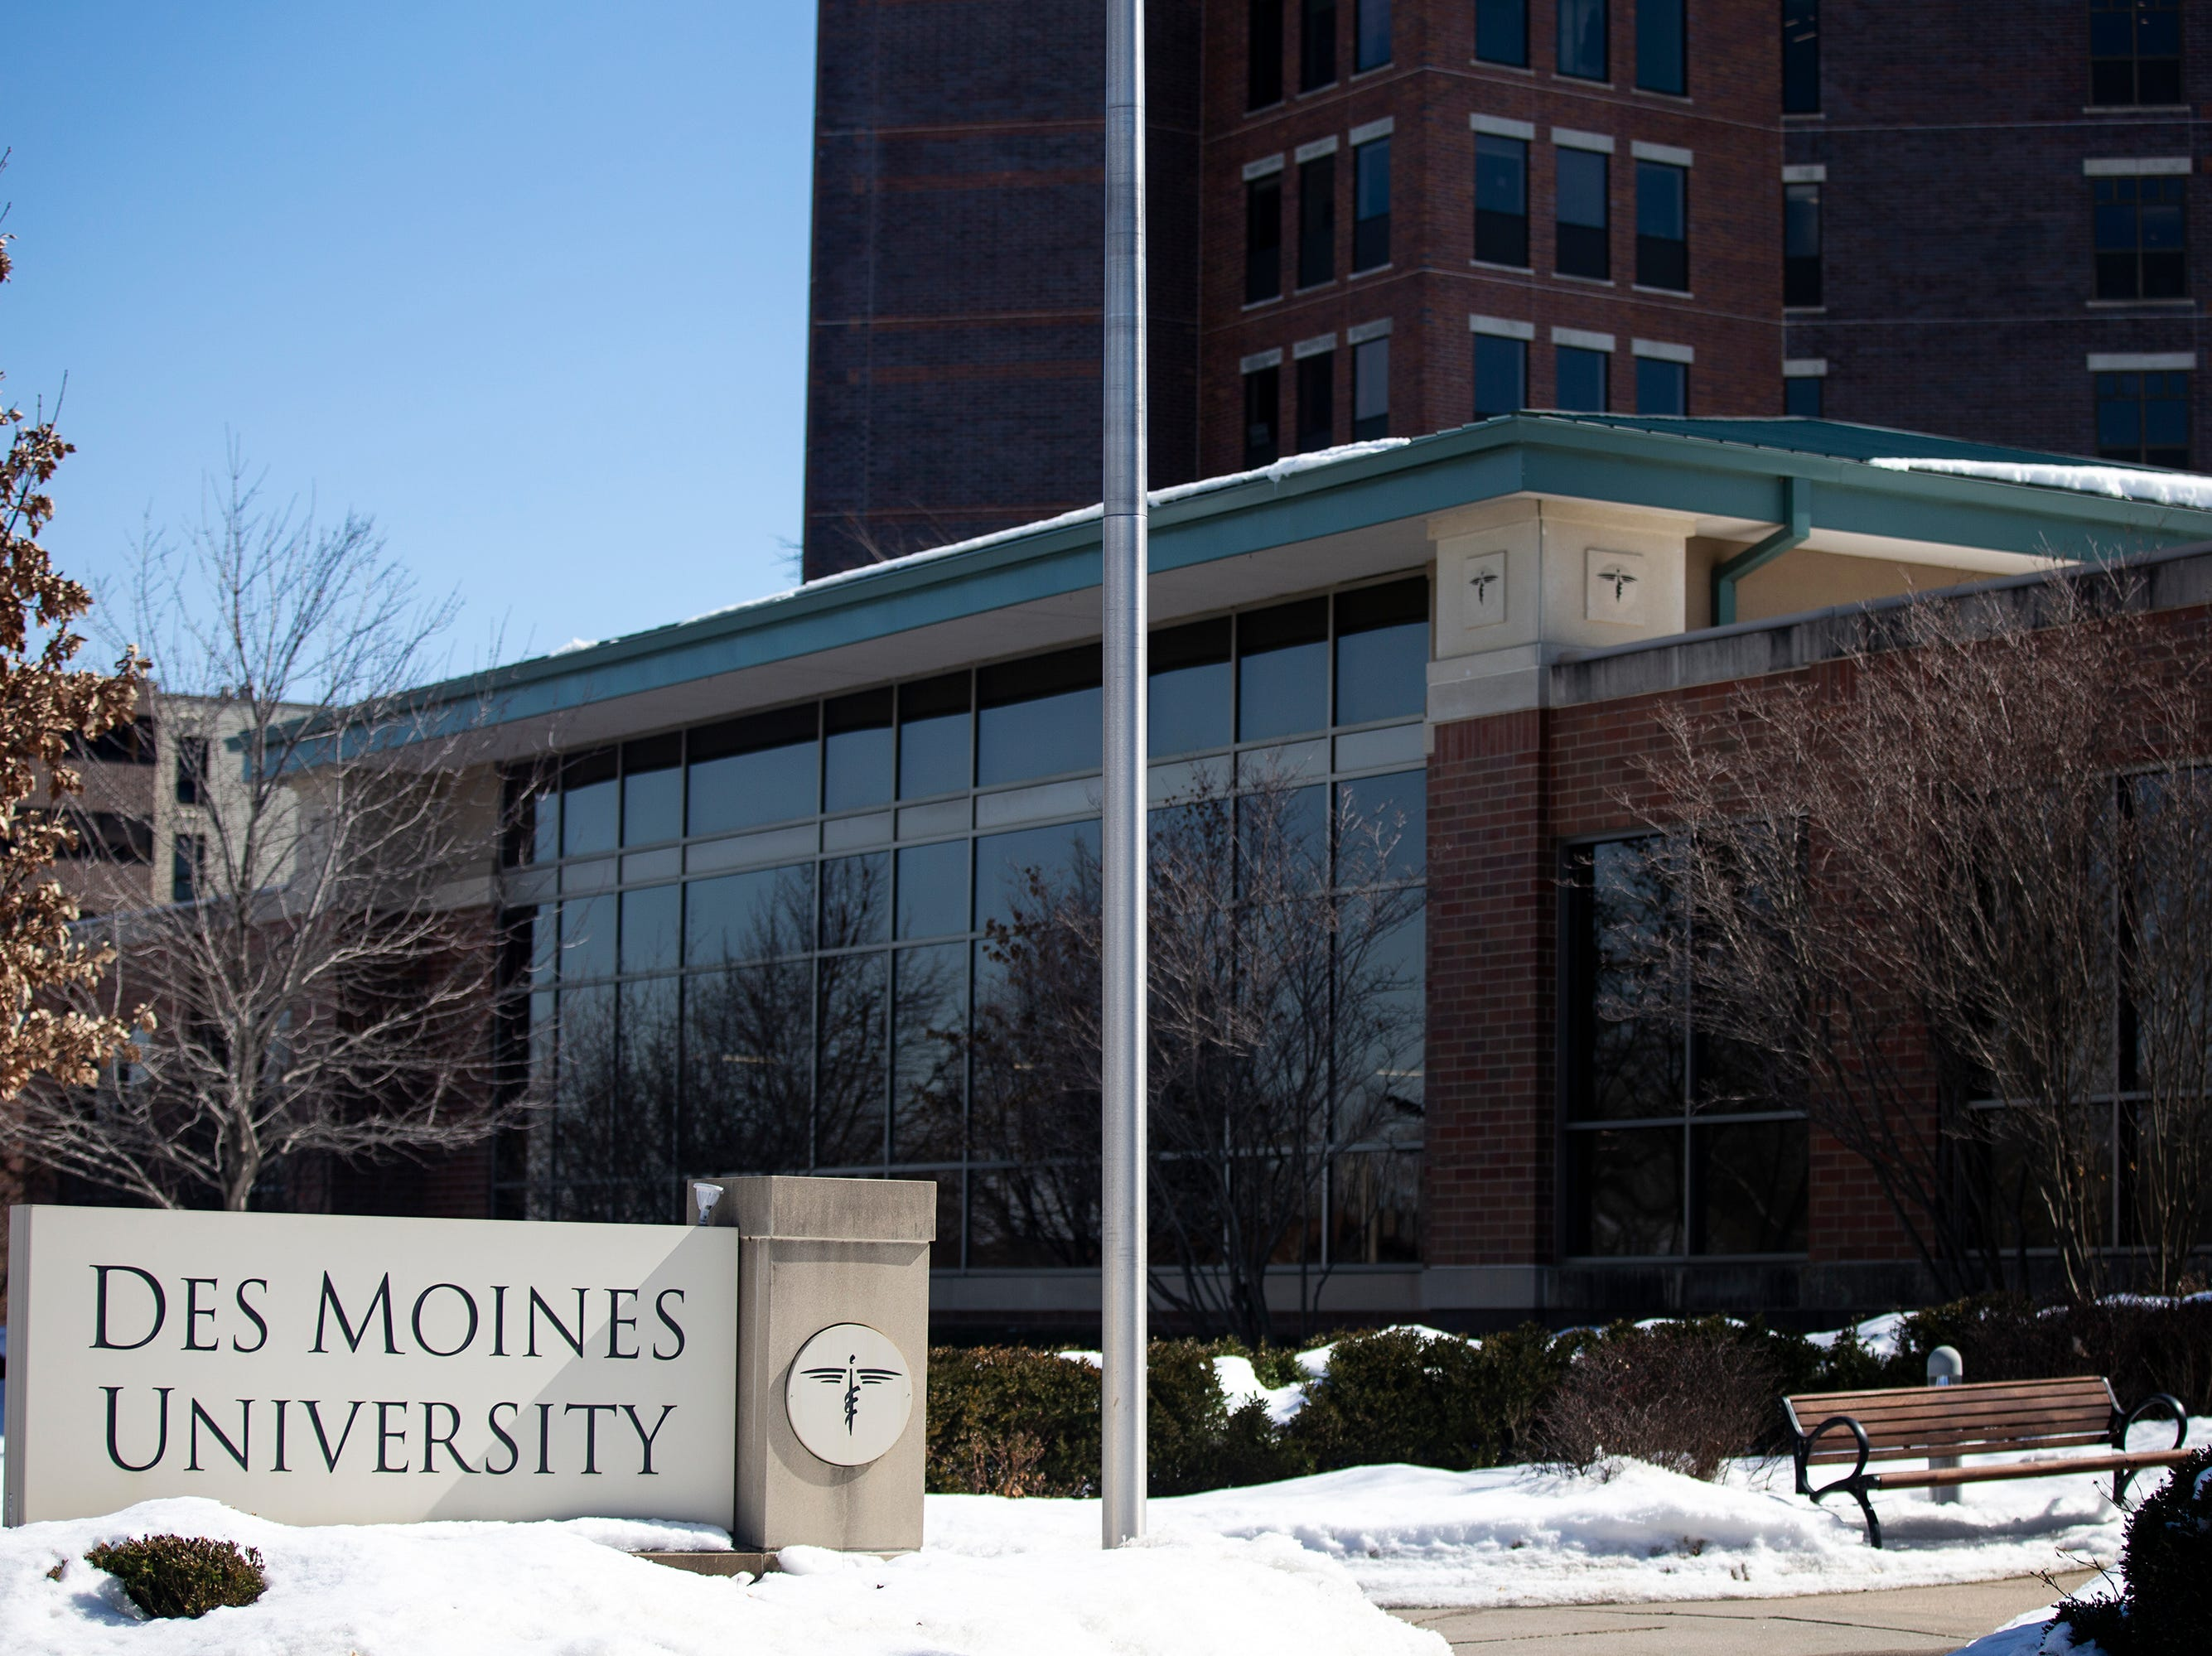 The Des Moines University campus on Monday, March 11, 2019, on the west-side of Des Moines. DMU announced today that the University plans to move the campus to West Des Moines.